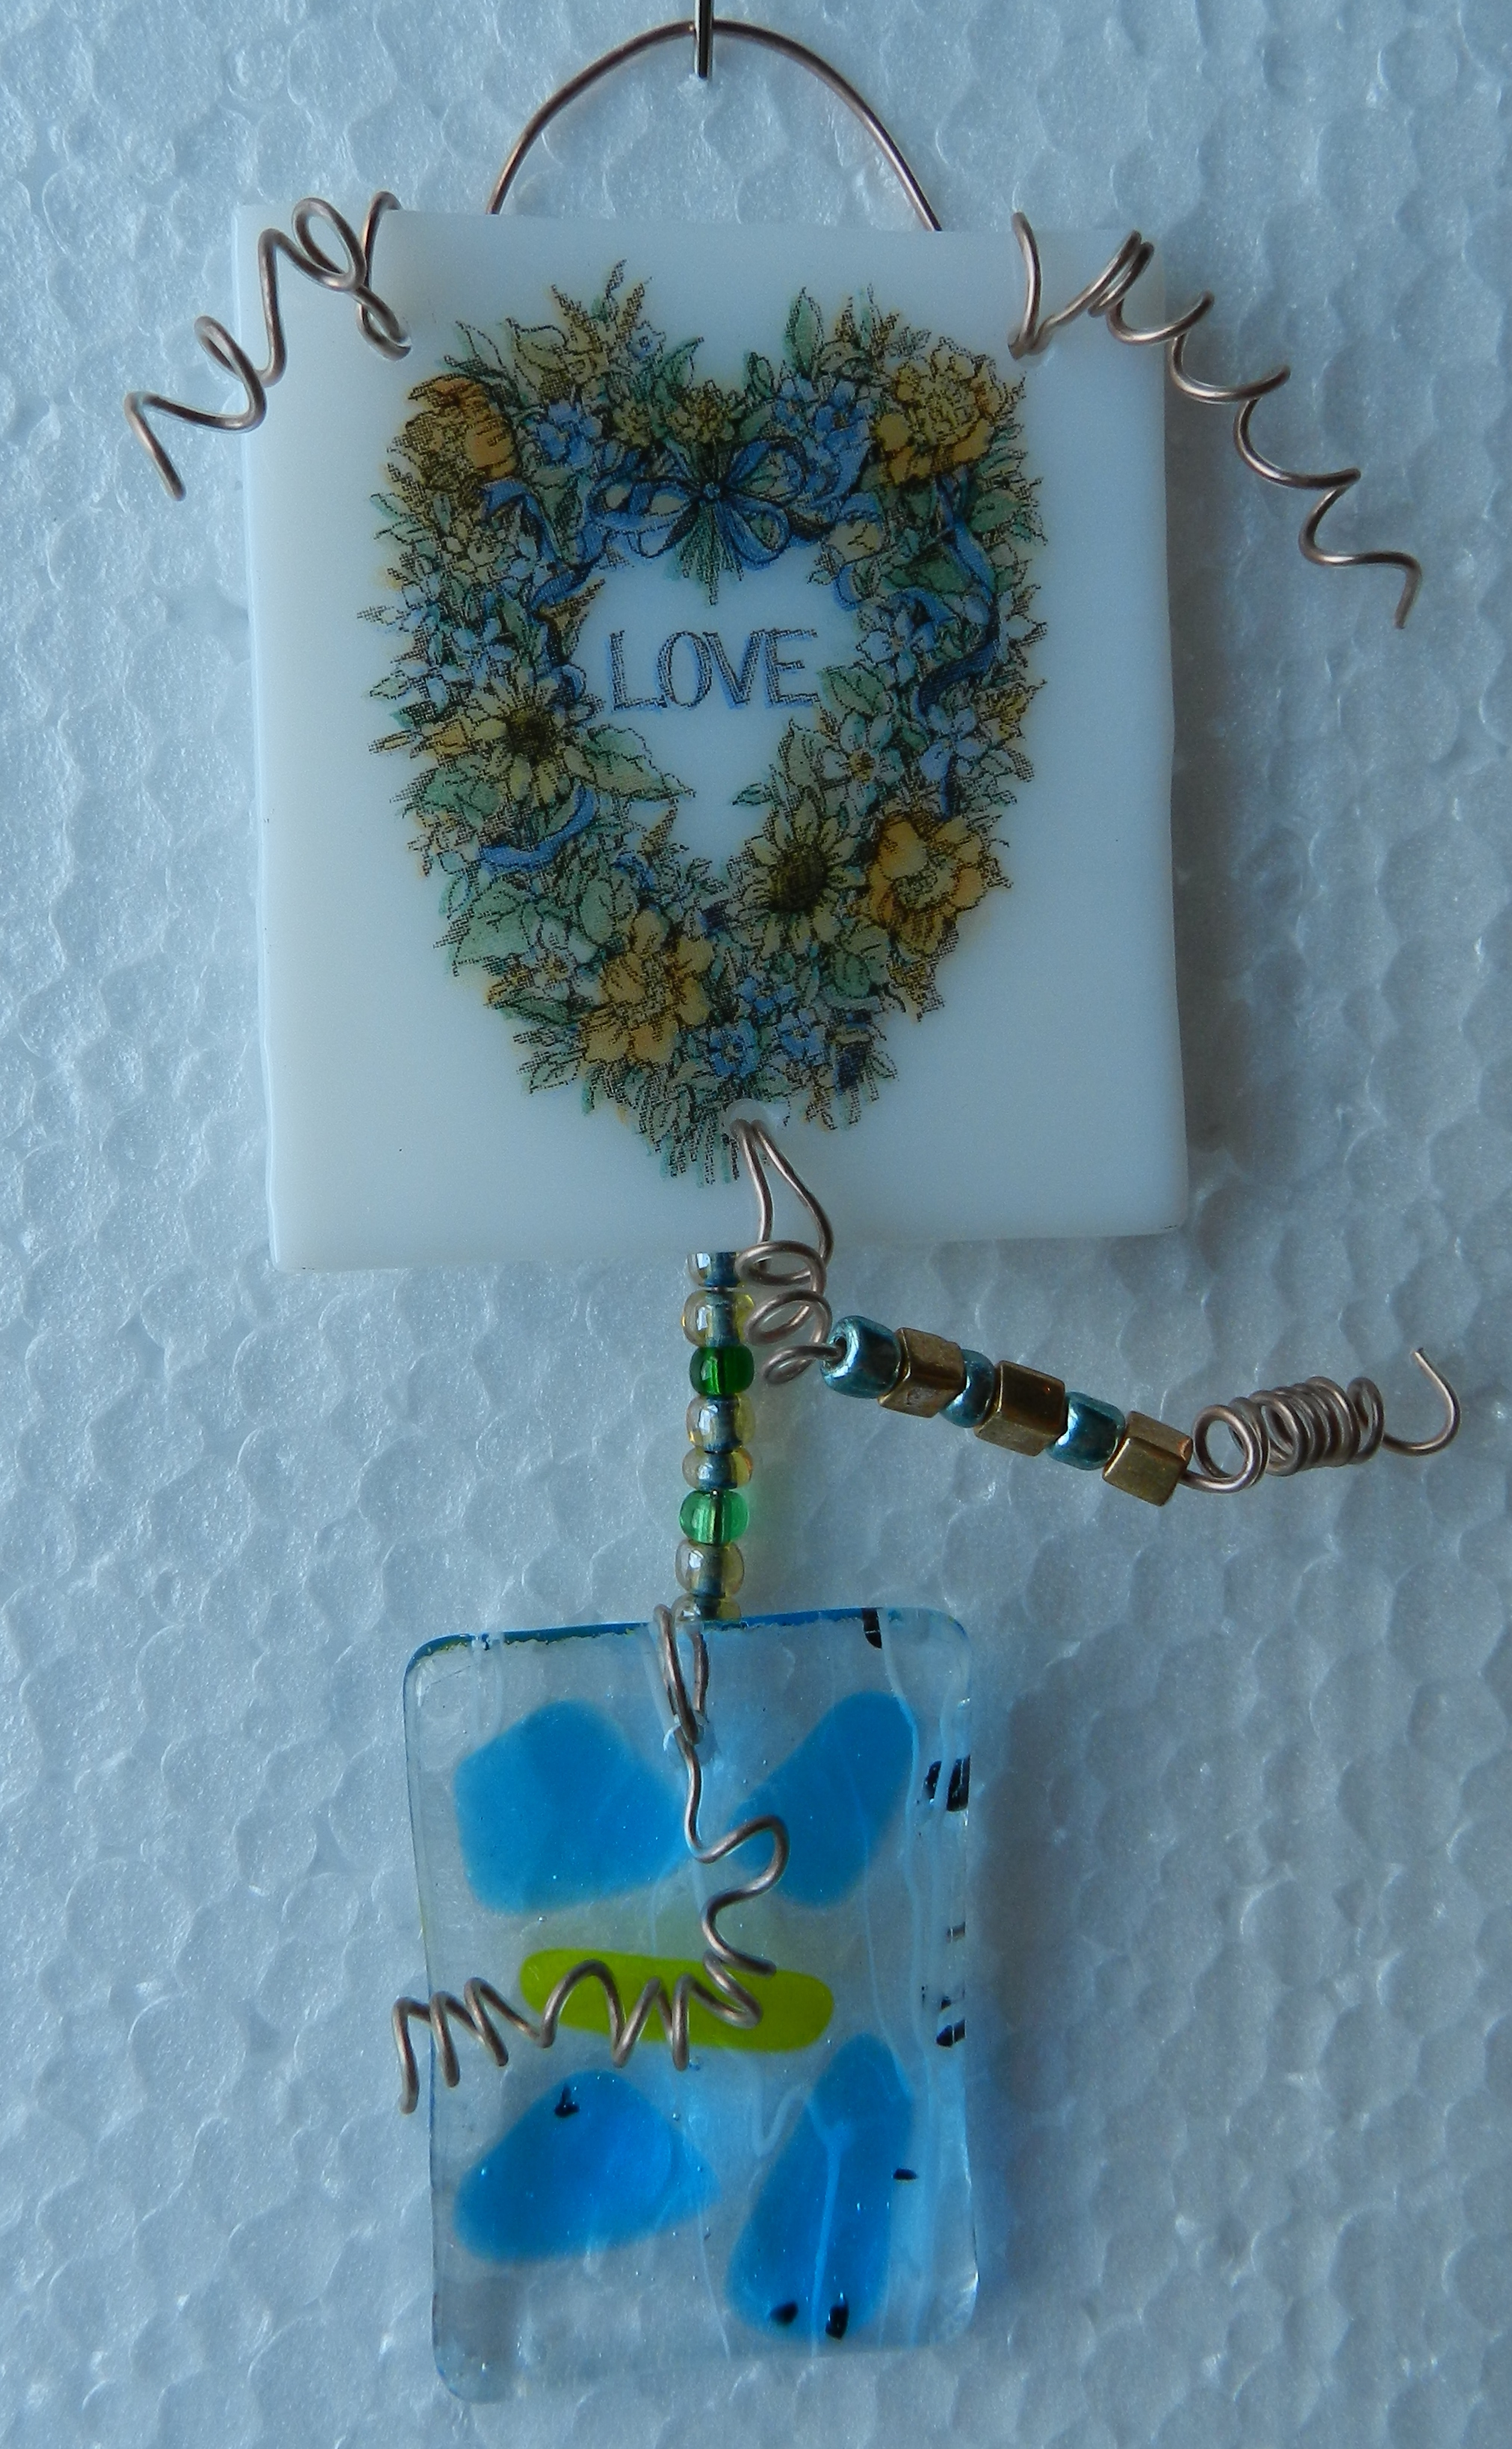 handcrafted recycled glass suncatcher made in the USA